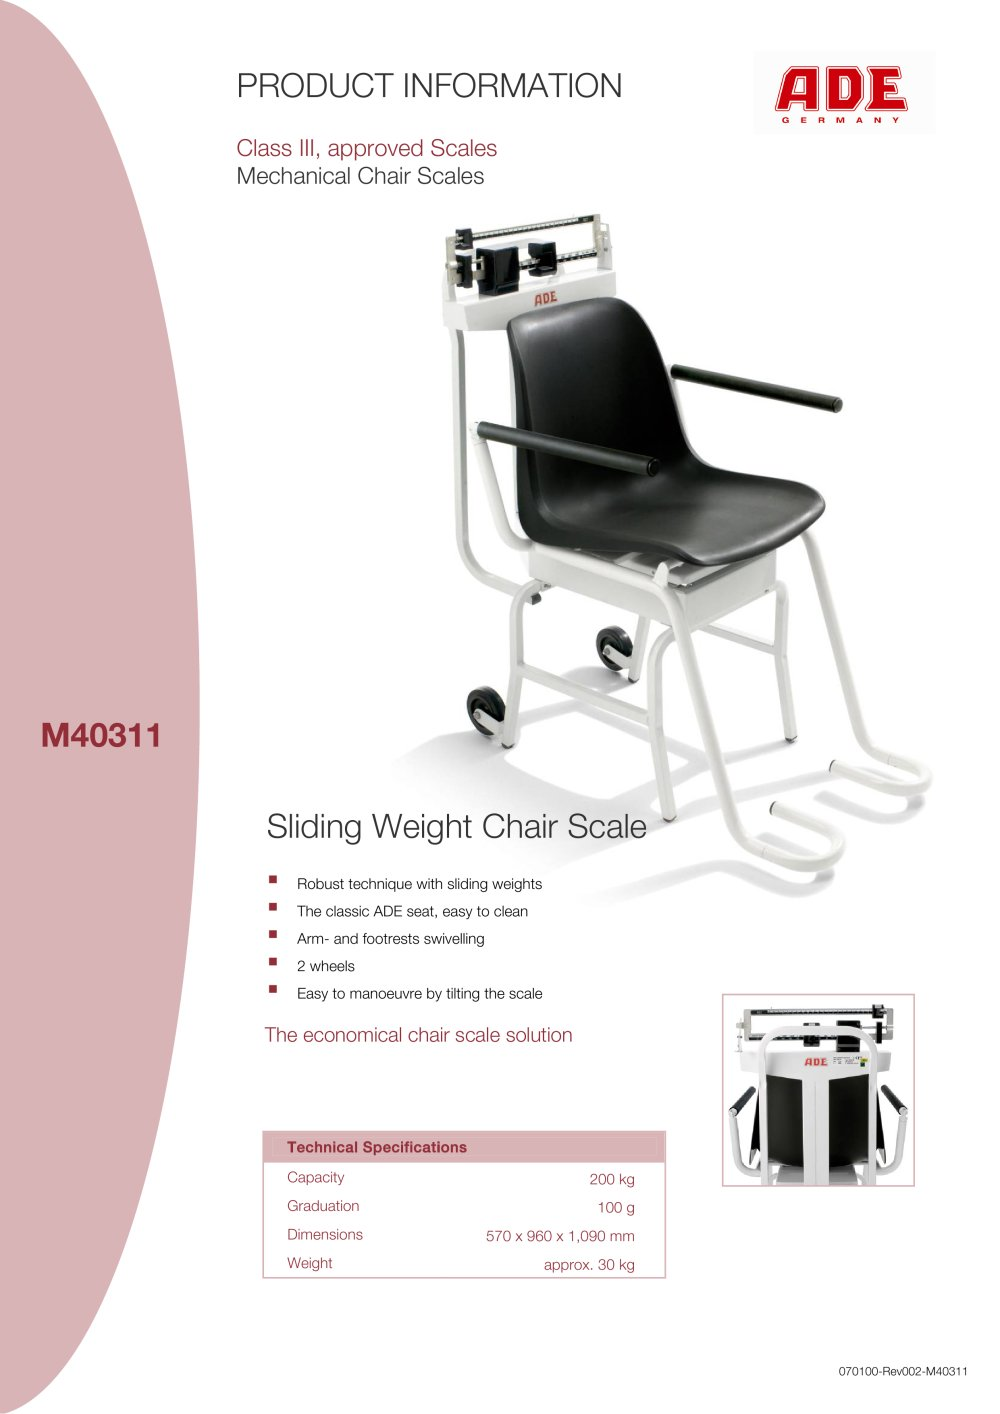 Sliding weight chair scale M40311 - M302000-01 - 1 / 1 Pages  sc 1 st  Catalogues Medicalexpo & Sliding weight chair scale M40311 - M302000-01 - ADE - PDF Catalogue ...